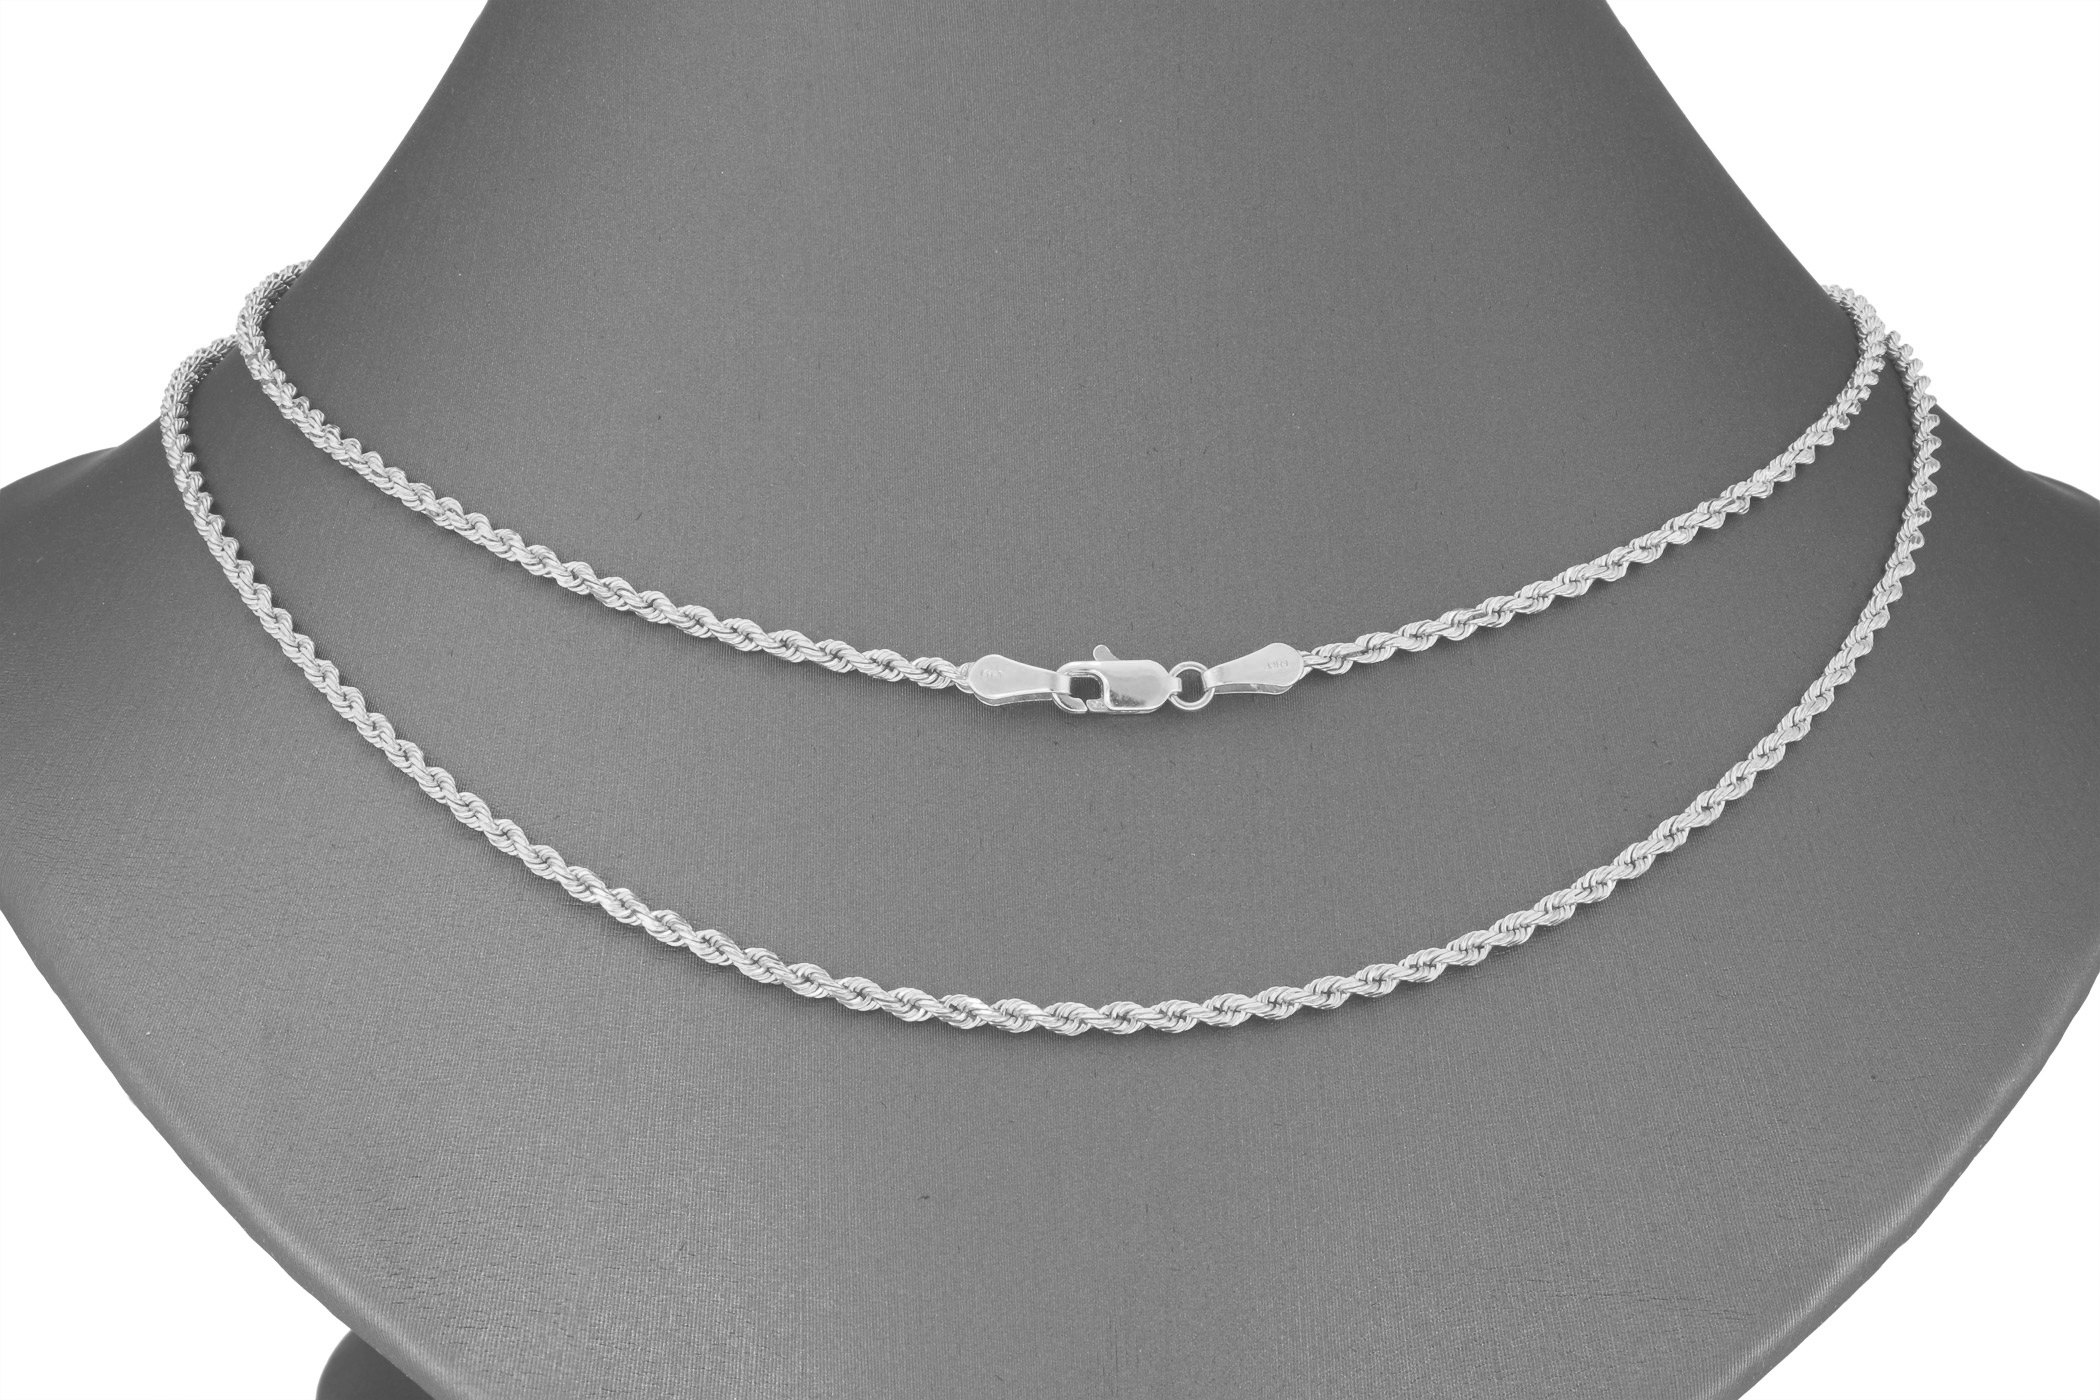 14K-White-Gold-Italian-2-5mm-Diamond-Cut-Rope-Chain-Pendant-Necklace-14-034-30-034 thumbnail 17